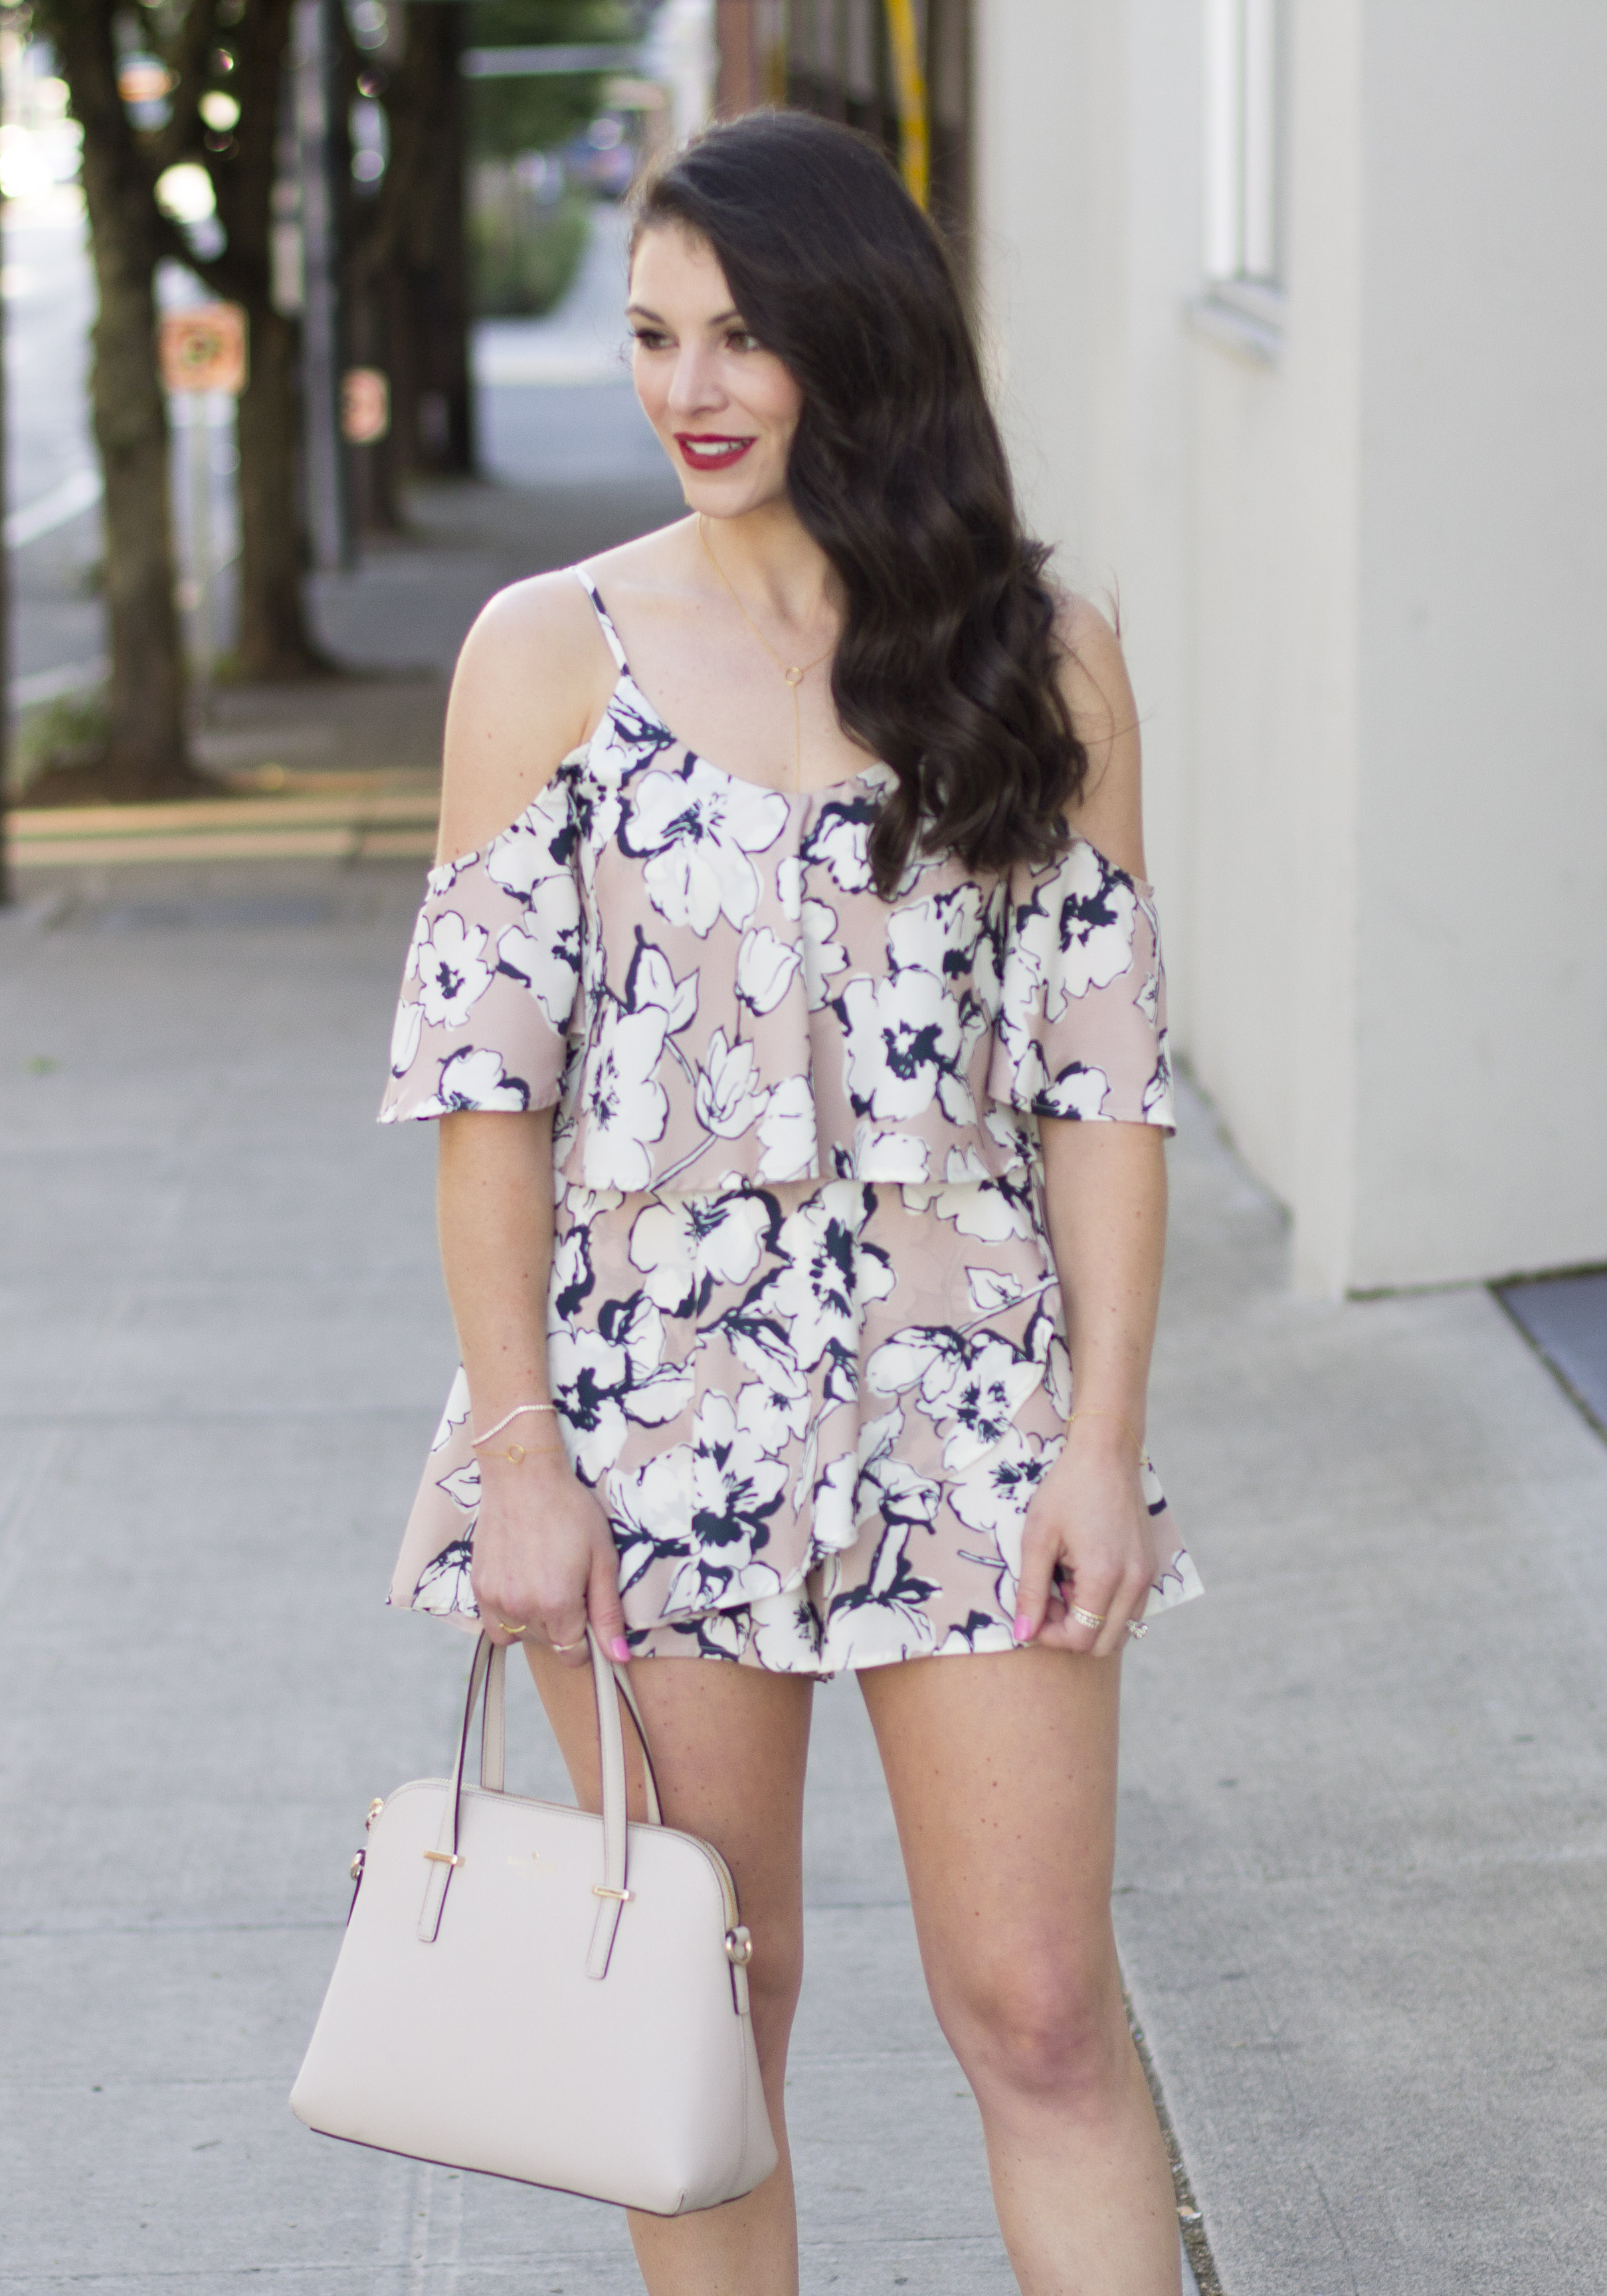 Summer date night outfit, JOA floral print cold shoulder romper, Steve Madden Rizzaa sandals, Kate Spade Cedar Street Maise, J.Crew denim jacket with DIY embellishment, statement earrings, and NARS red lipstick!